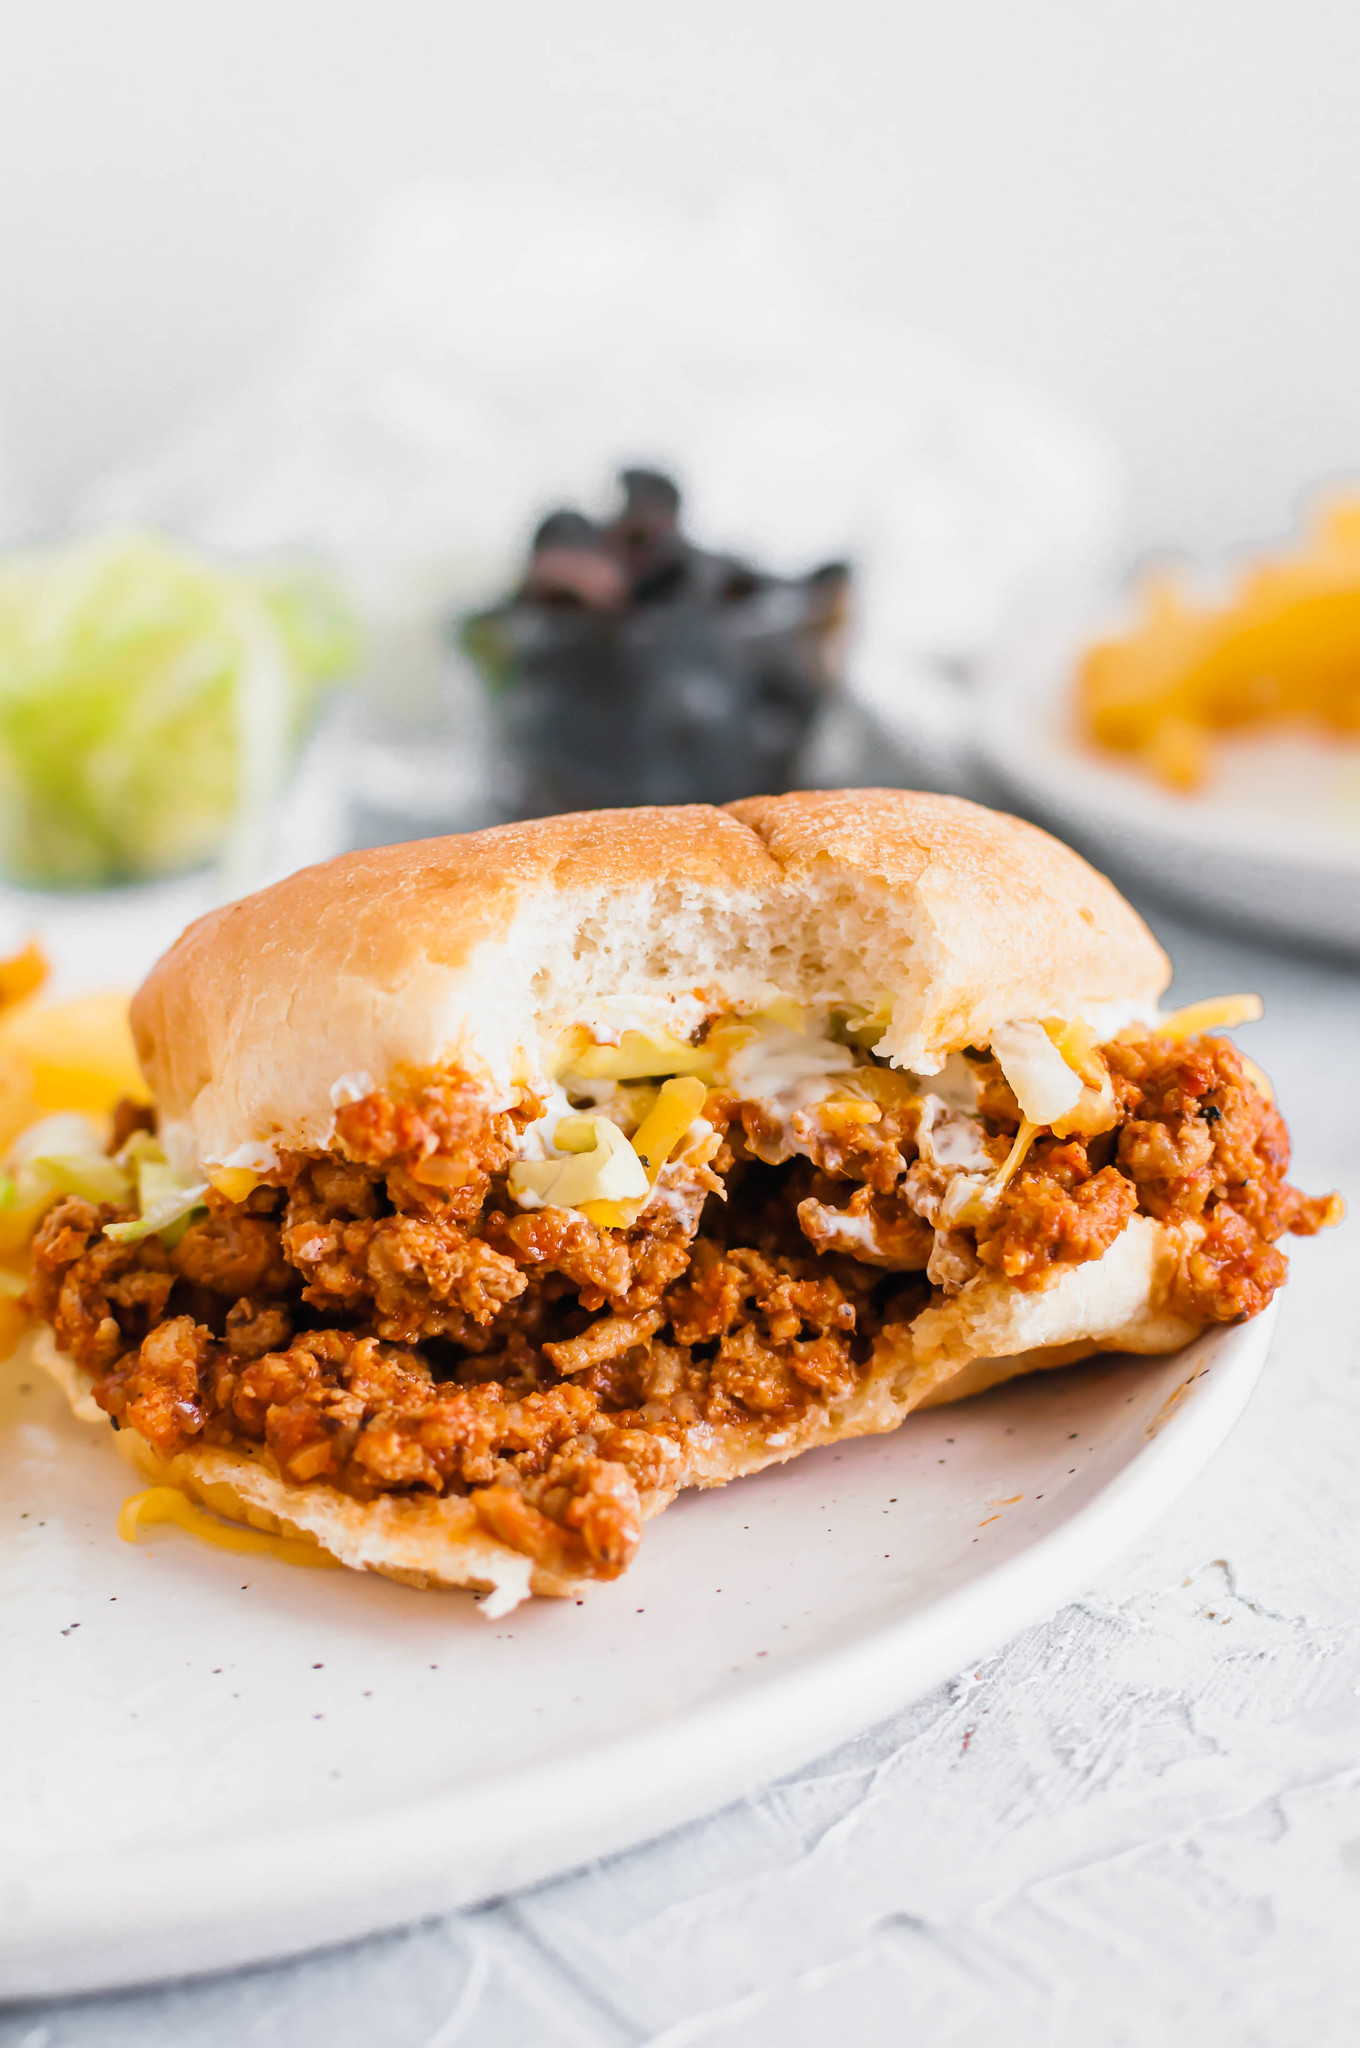 Get ready for back to school with these Taco Turkey Sloppy Joes. They are quick (less than 30 minutes), easy and a big family pleaser. Top with all your favorite taco toppings.